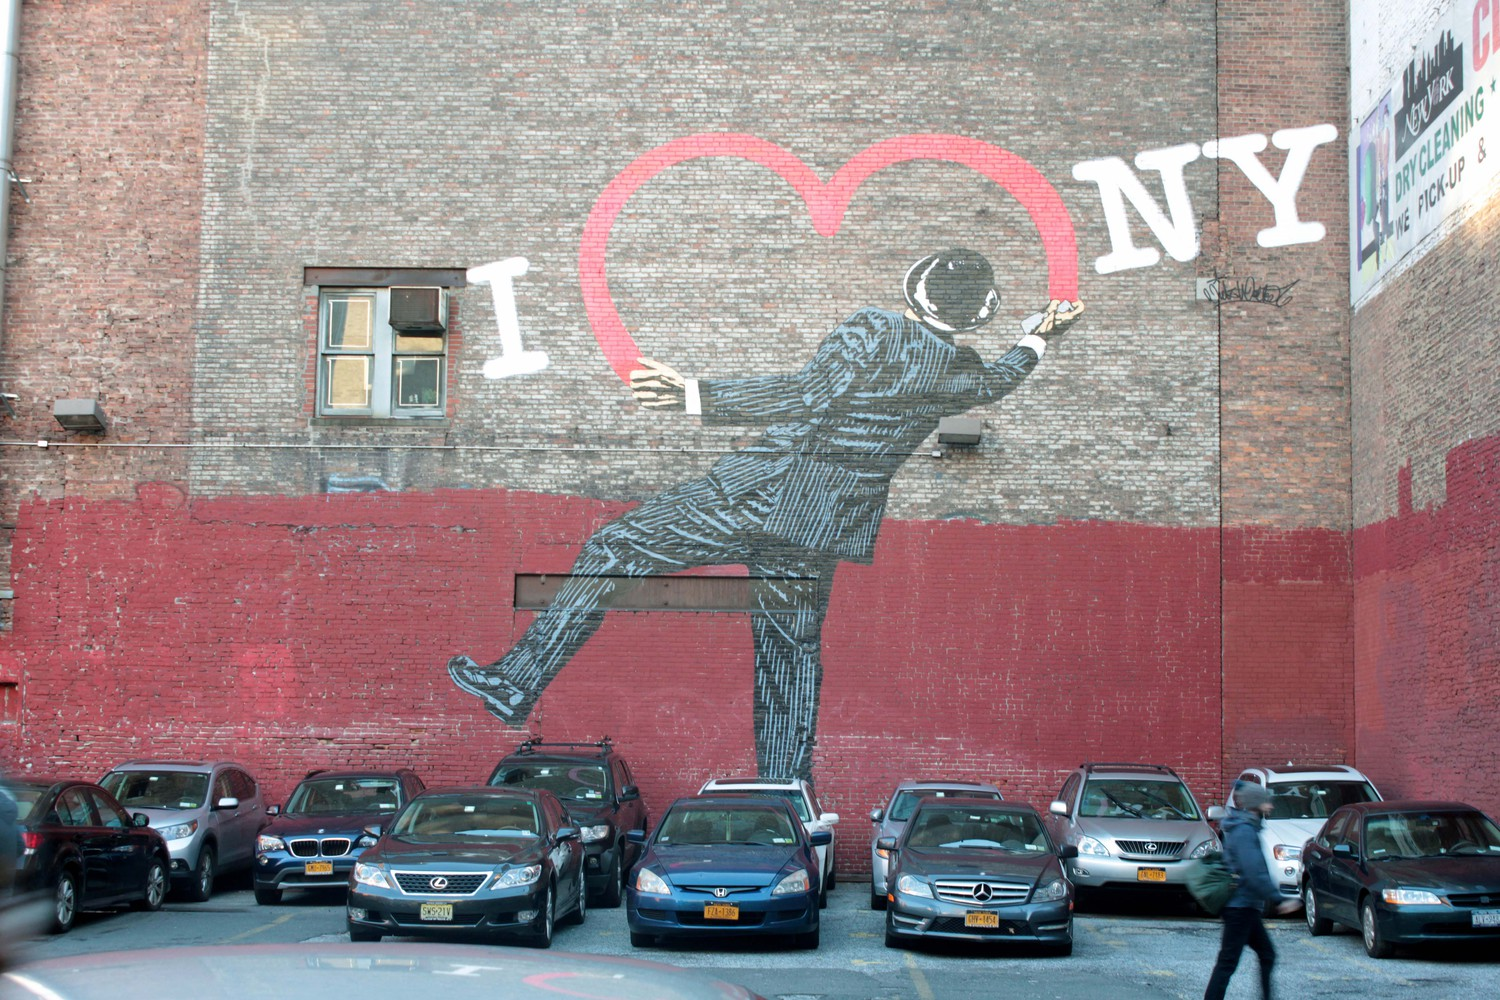 IMG_7839_Nick Walker - I heart NY